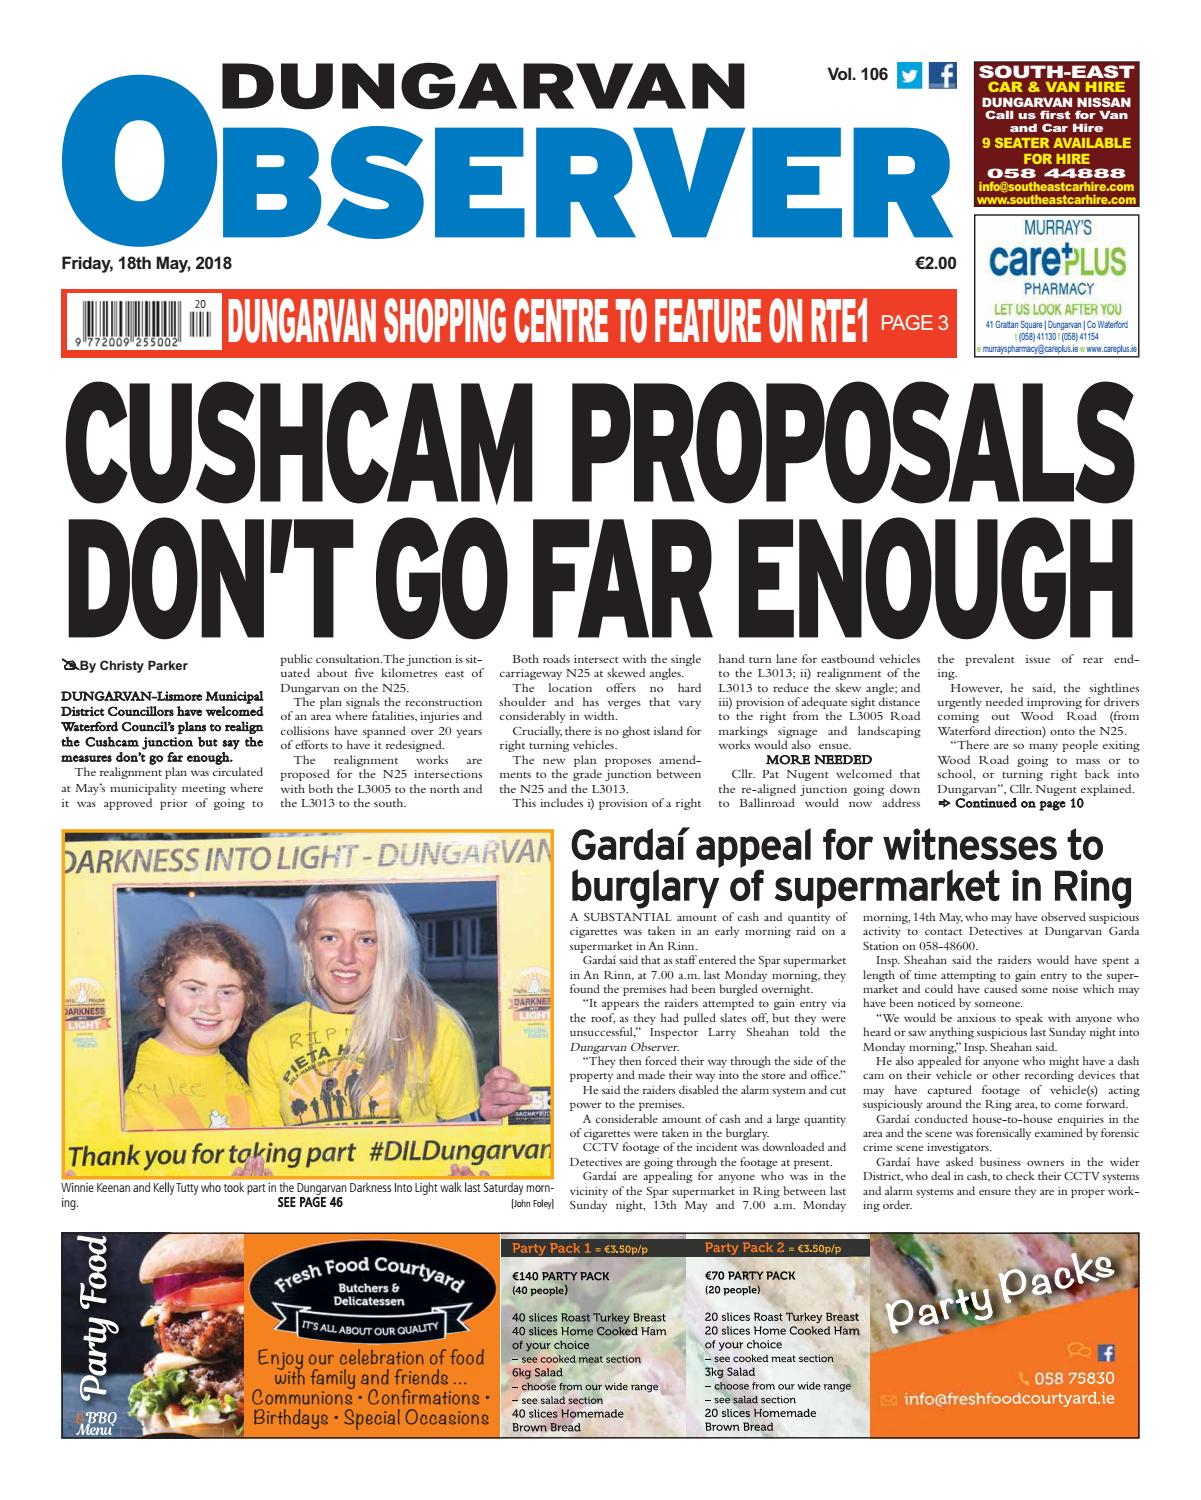 Dungarvan observer 18 5 2018 edition by Dungarvan Observer - issuu 887dd708c7ac9